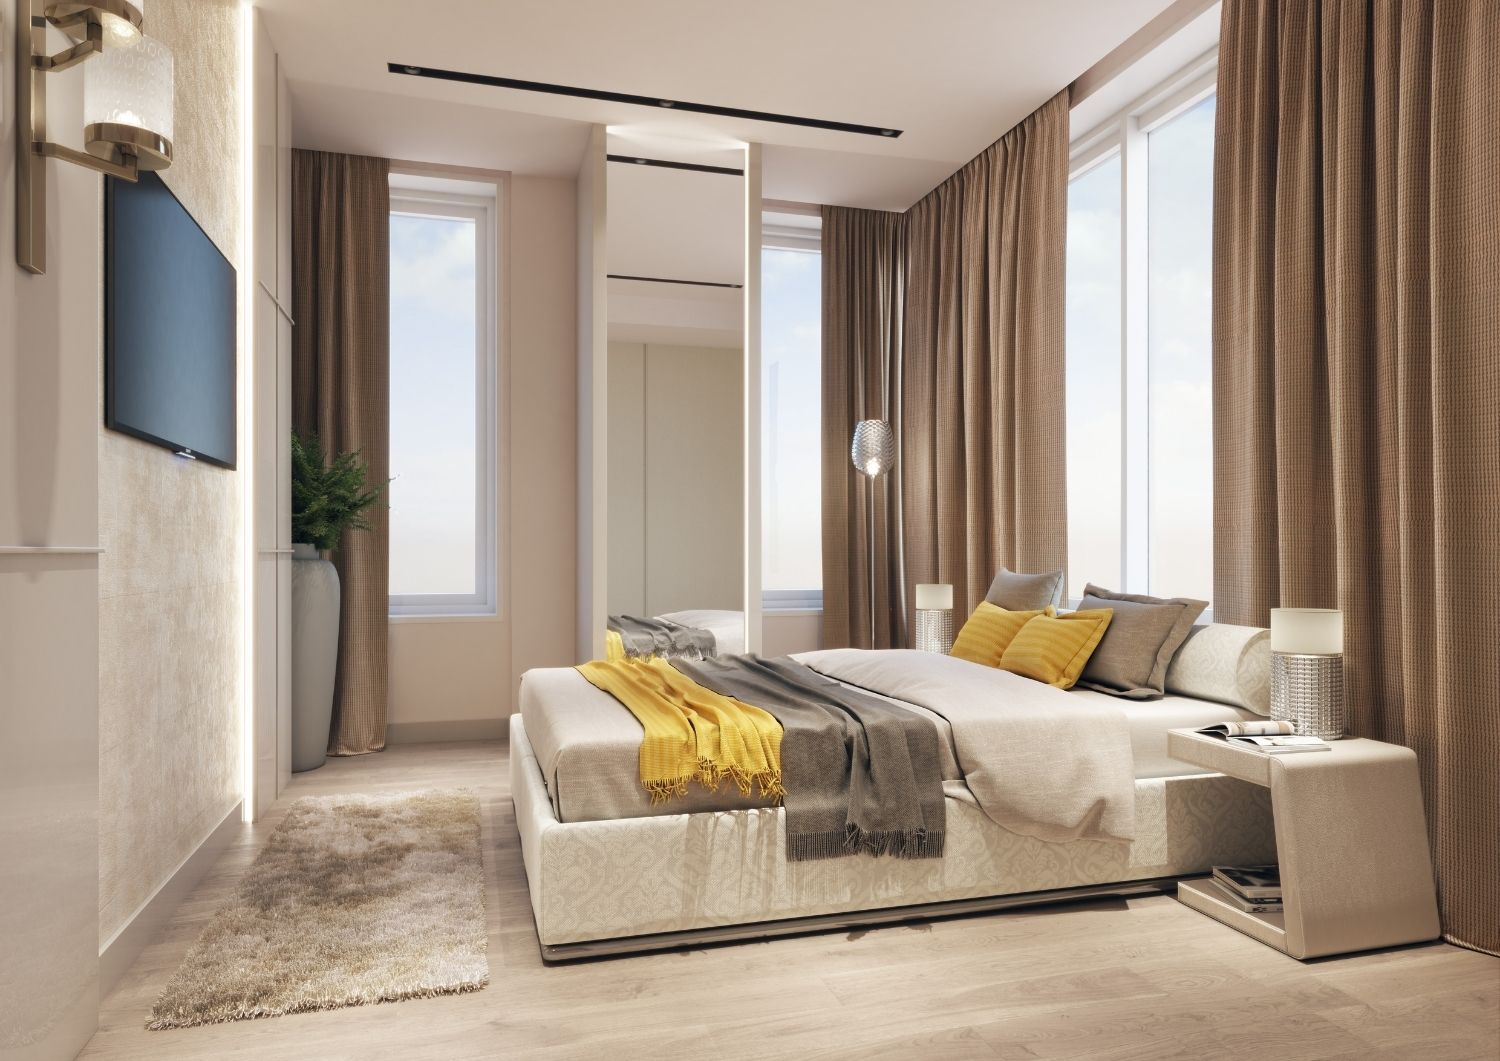 An elegant master bedroom combines perfectly with the light mood of the apartment. Studio D73